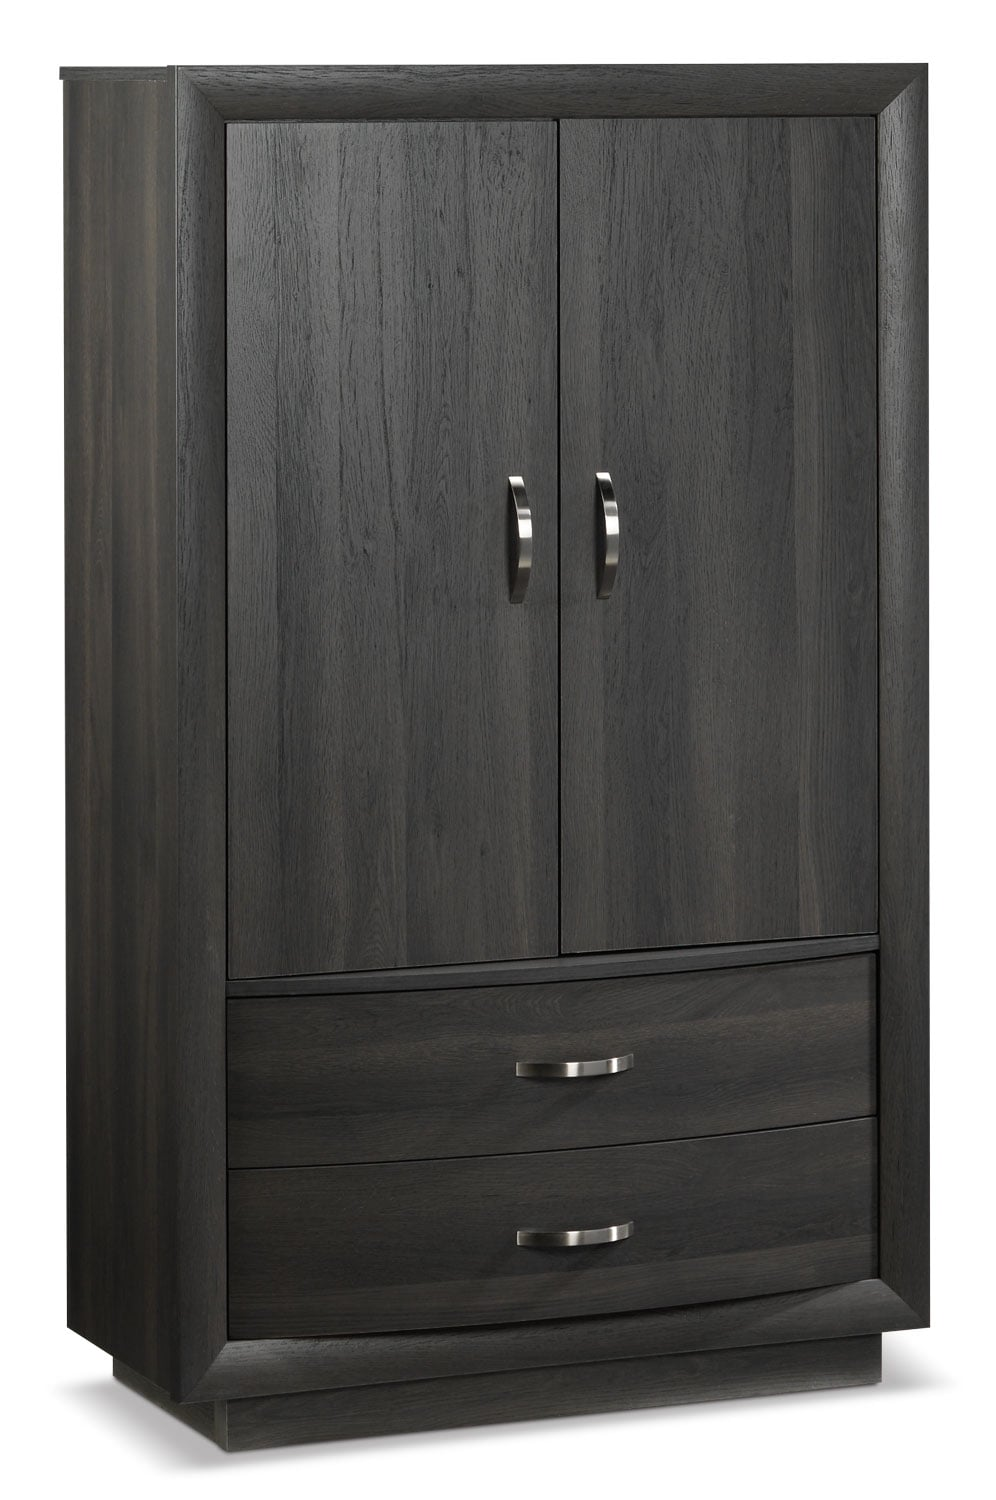 Gerard armoire deep grey leon 39 s for Frigidaire armoire